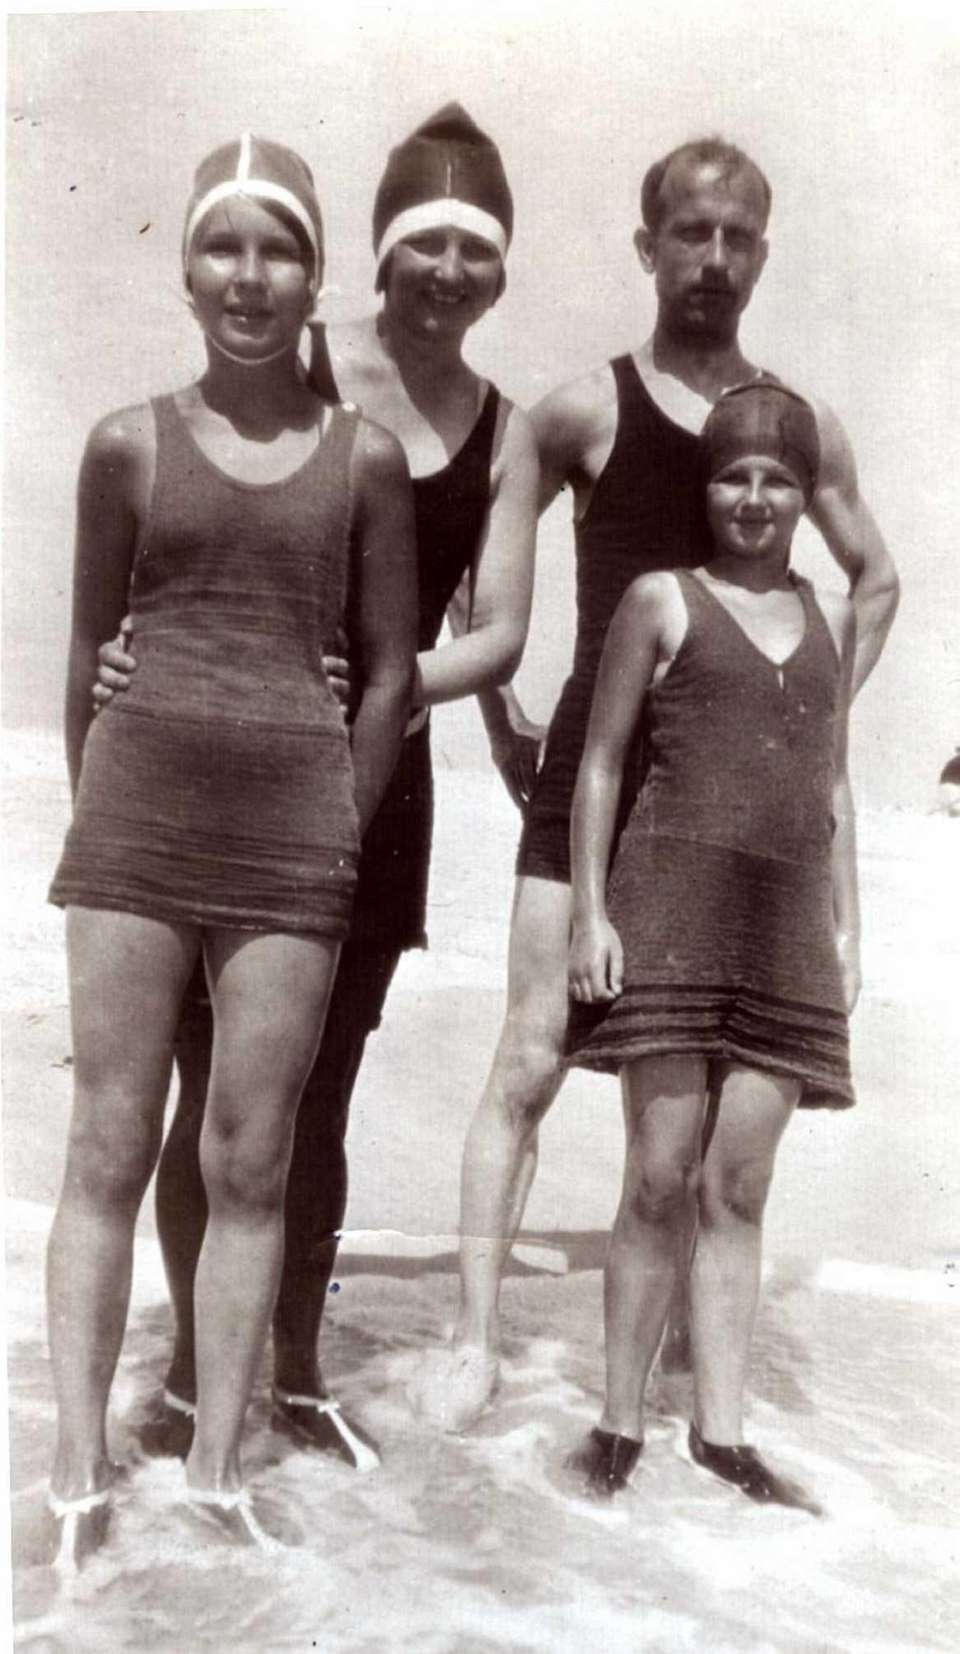 Swimmers at High Hill Beach in the 1920s.